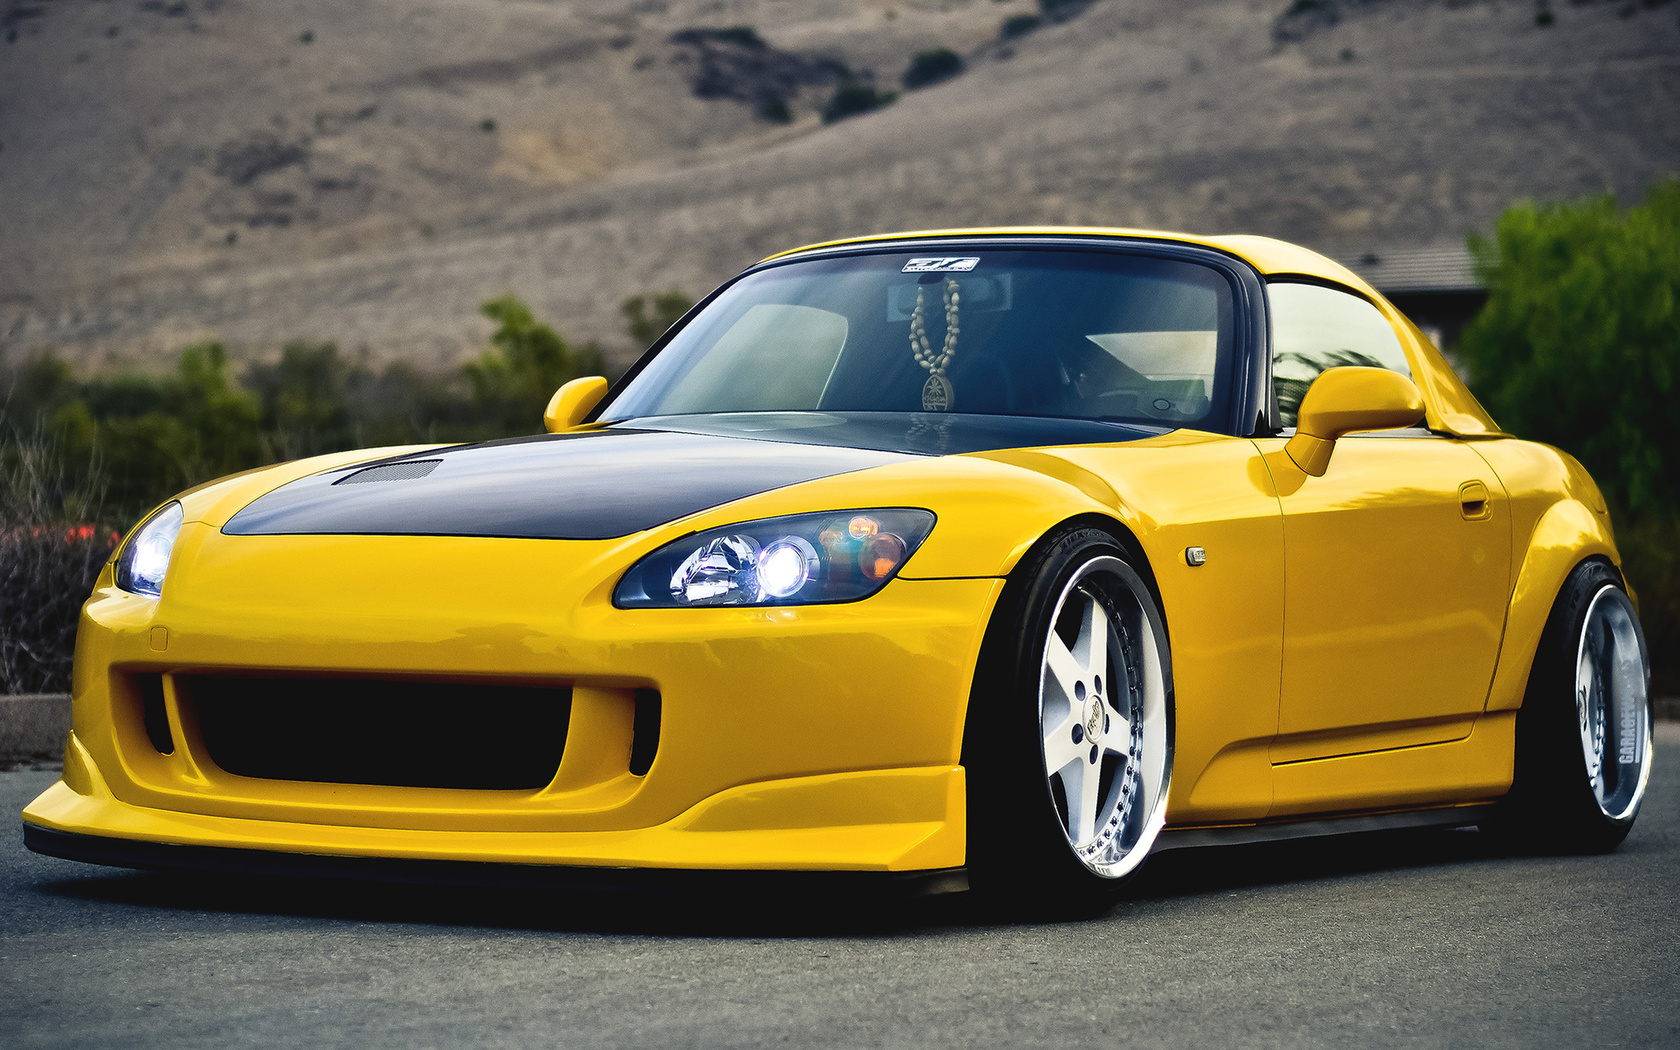 тюнинг, хонда, tuning, yellow, s2000, 2000, желтый, Honda